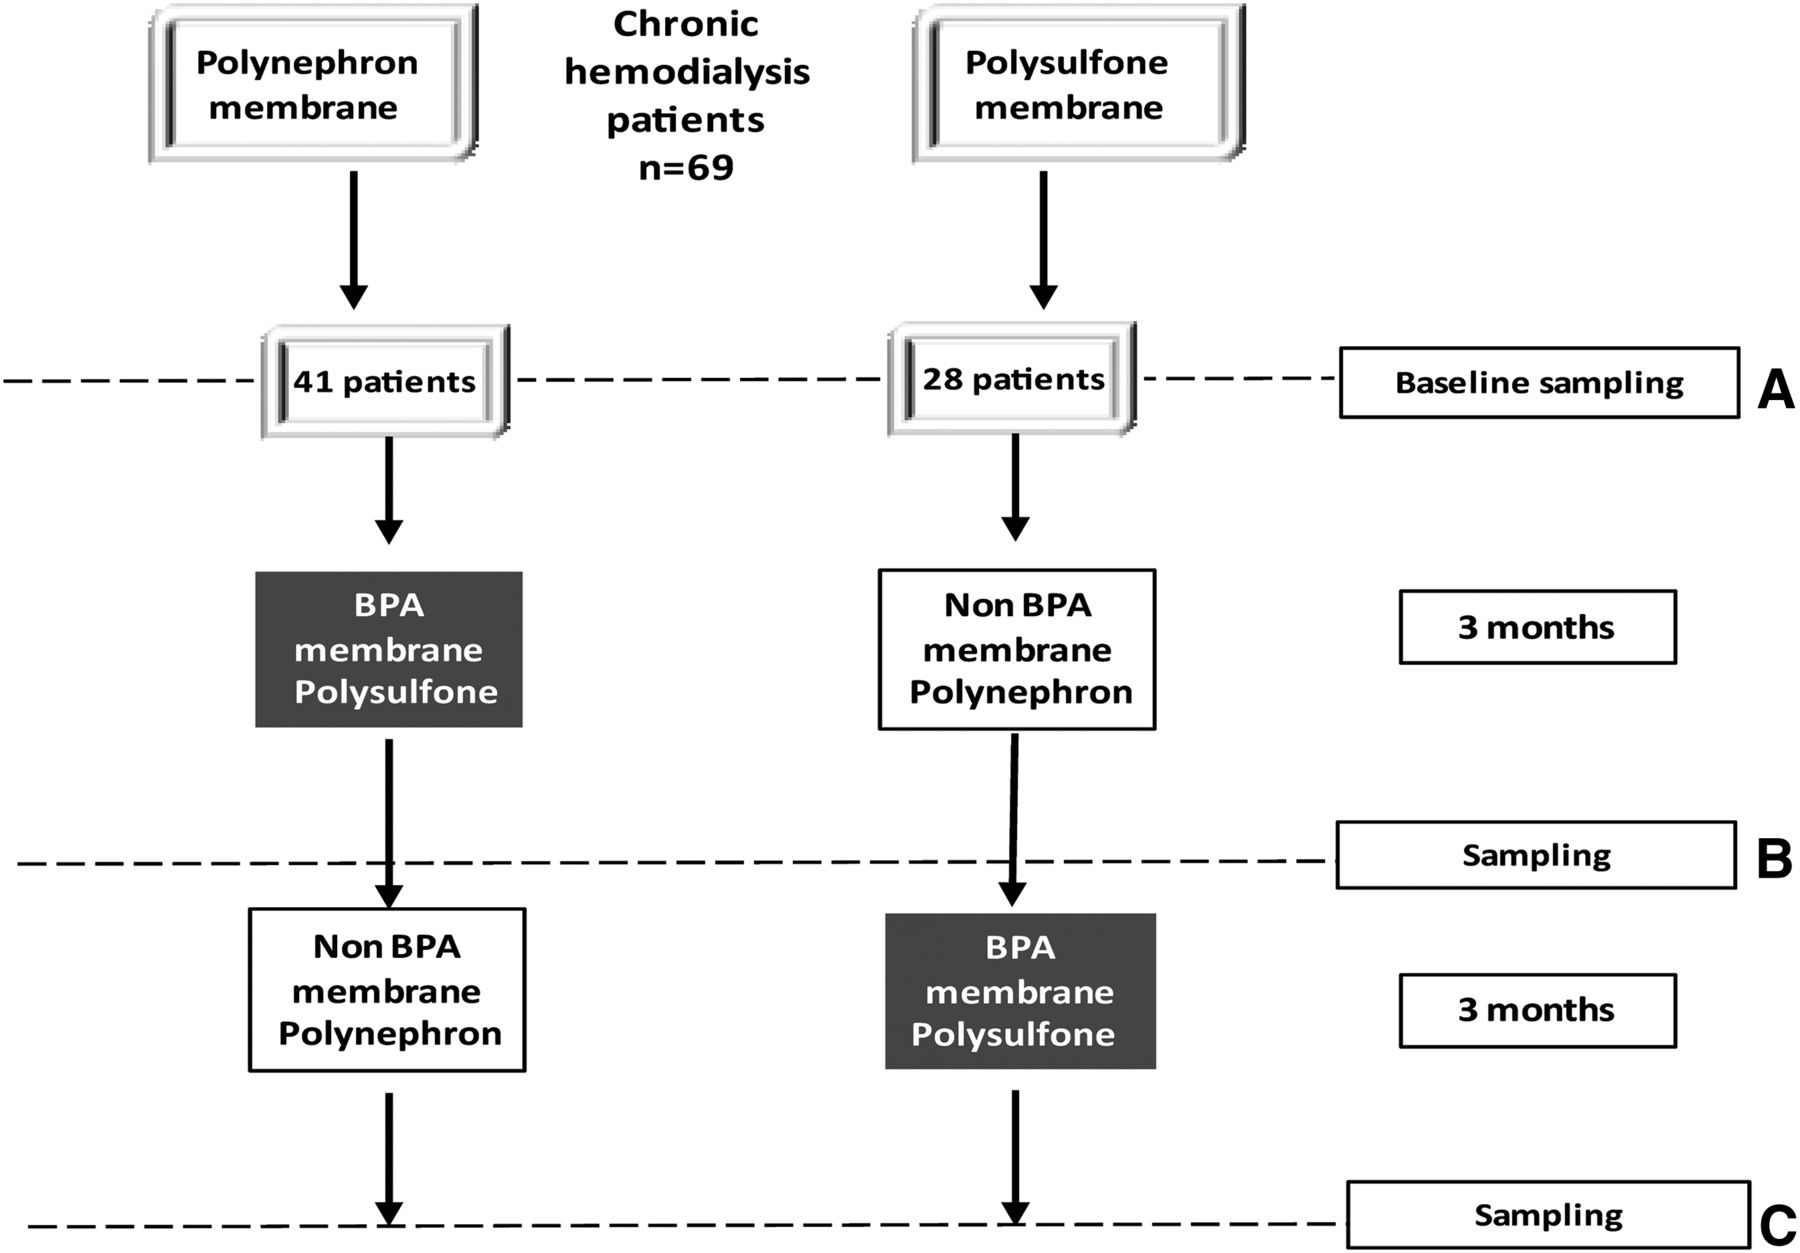 The Choice of Hemodialysis Membrane Affects Bisphenol A